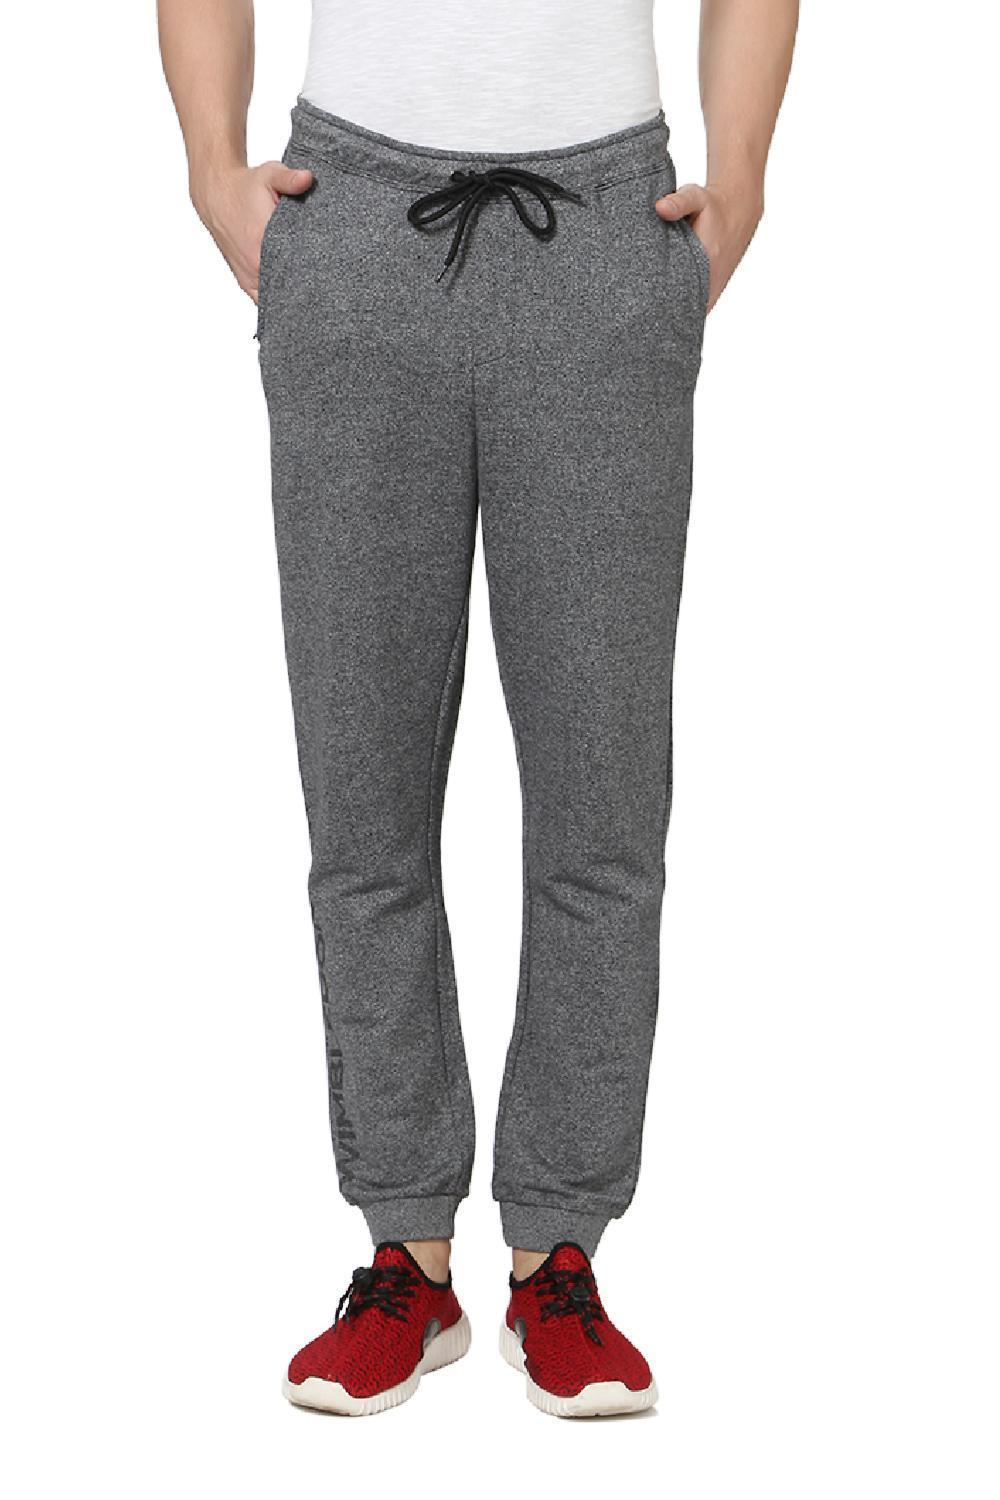 bd318aa515b84 Solly Sport Active Wear, Allen Solly Grey Wimbledon Track Pants for Men at  Allensolly.com